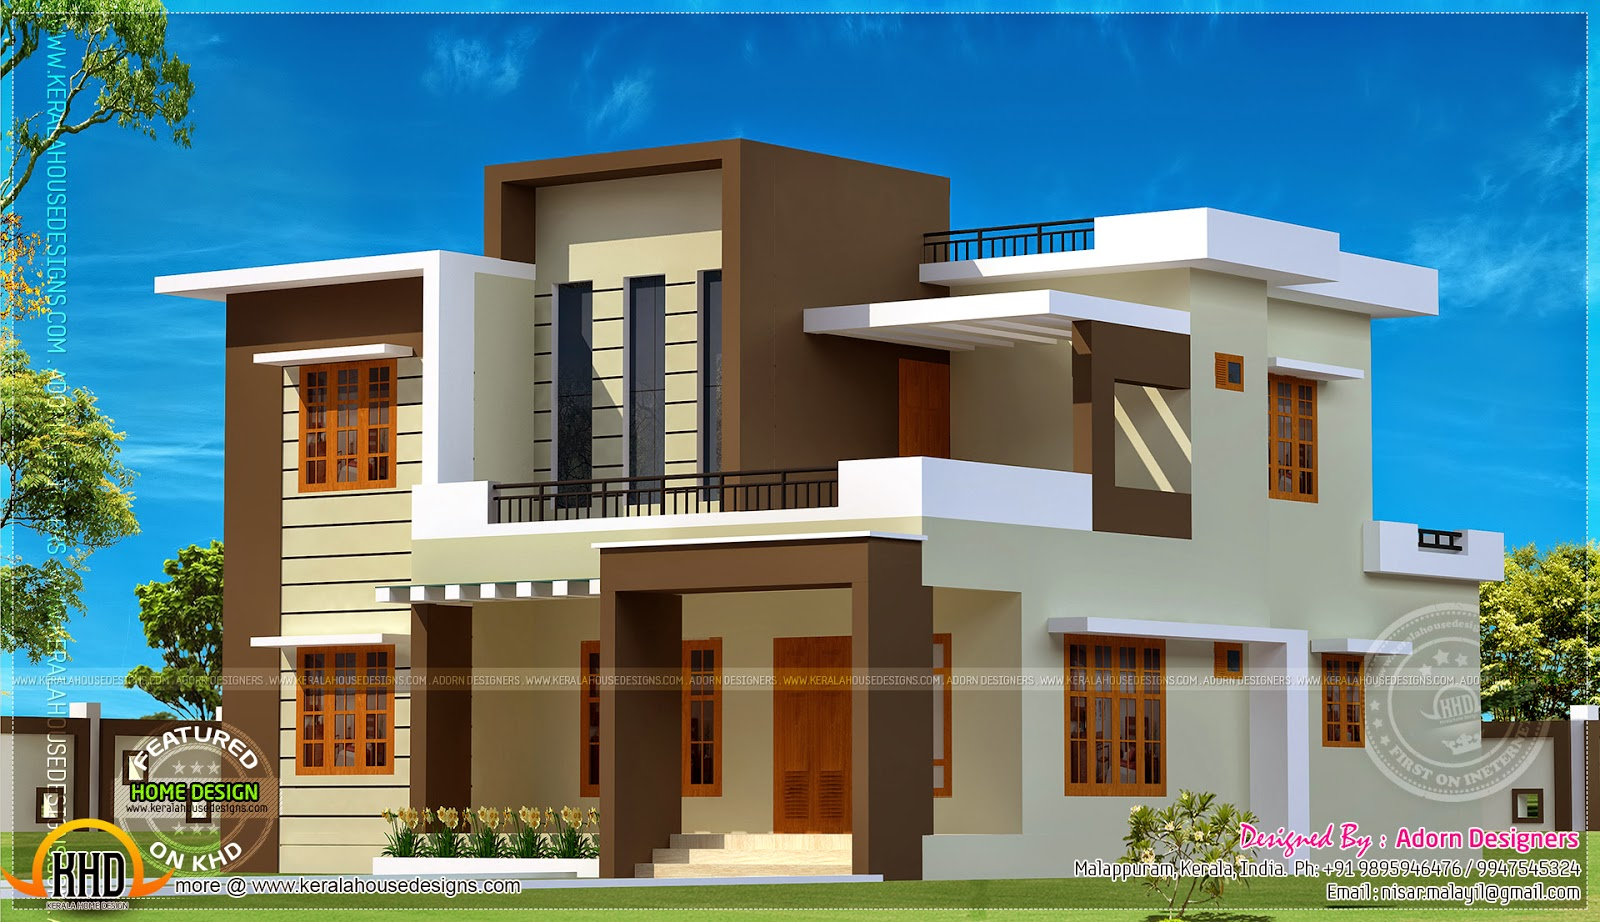 Simple house plans flat roof front design for Simple mansion